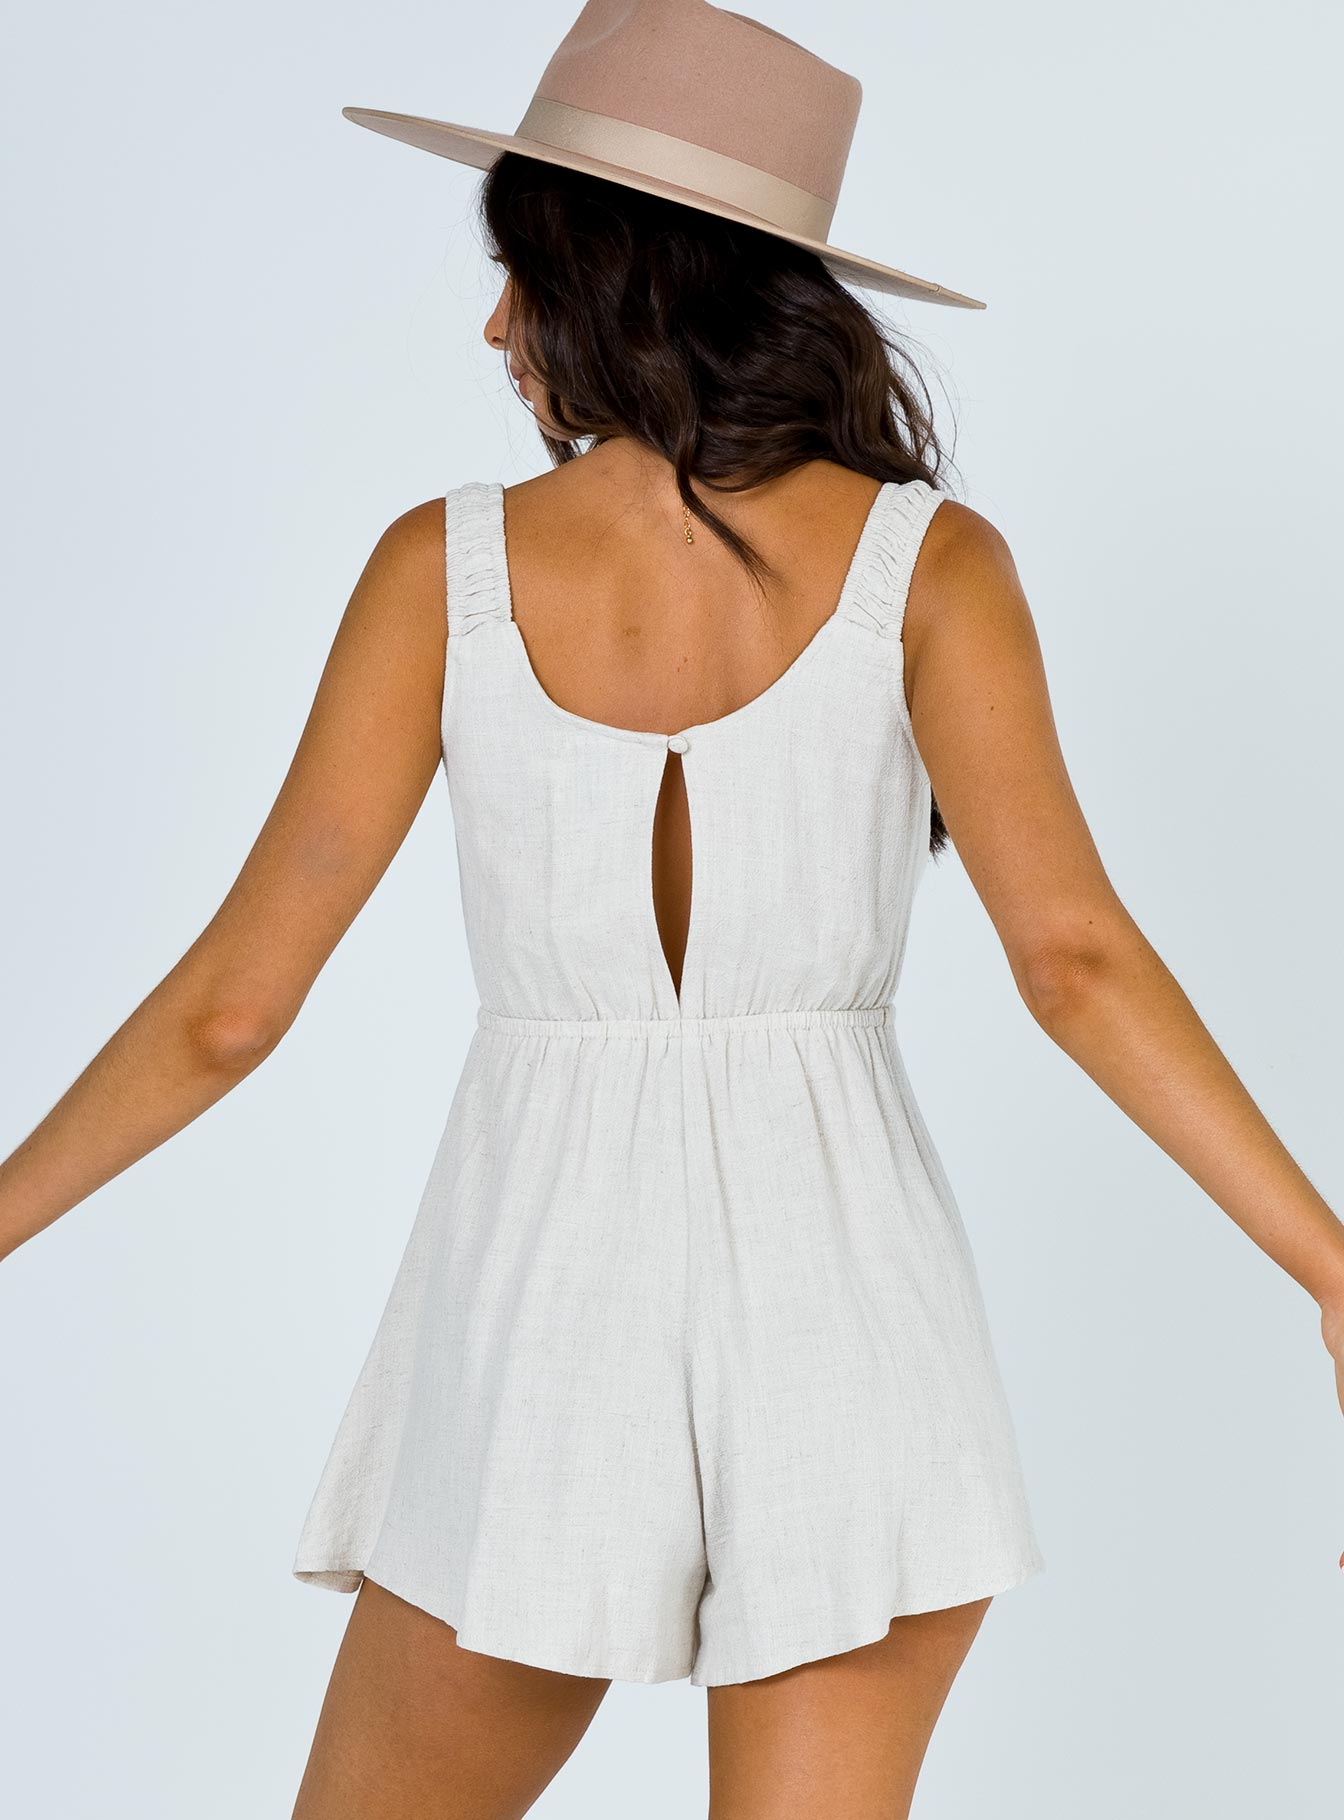 Chrissy May Romper